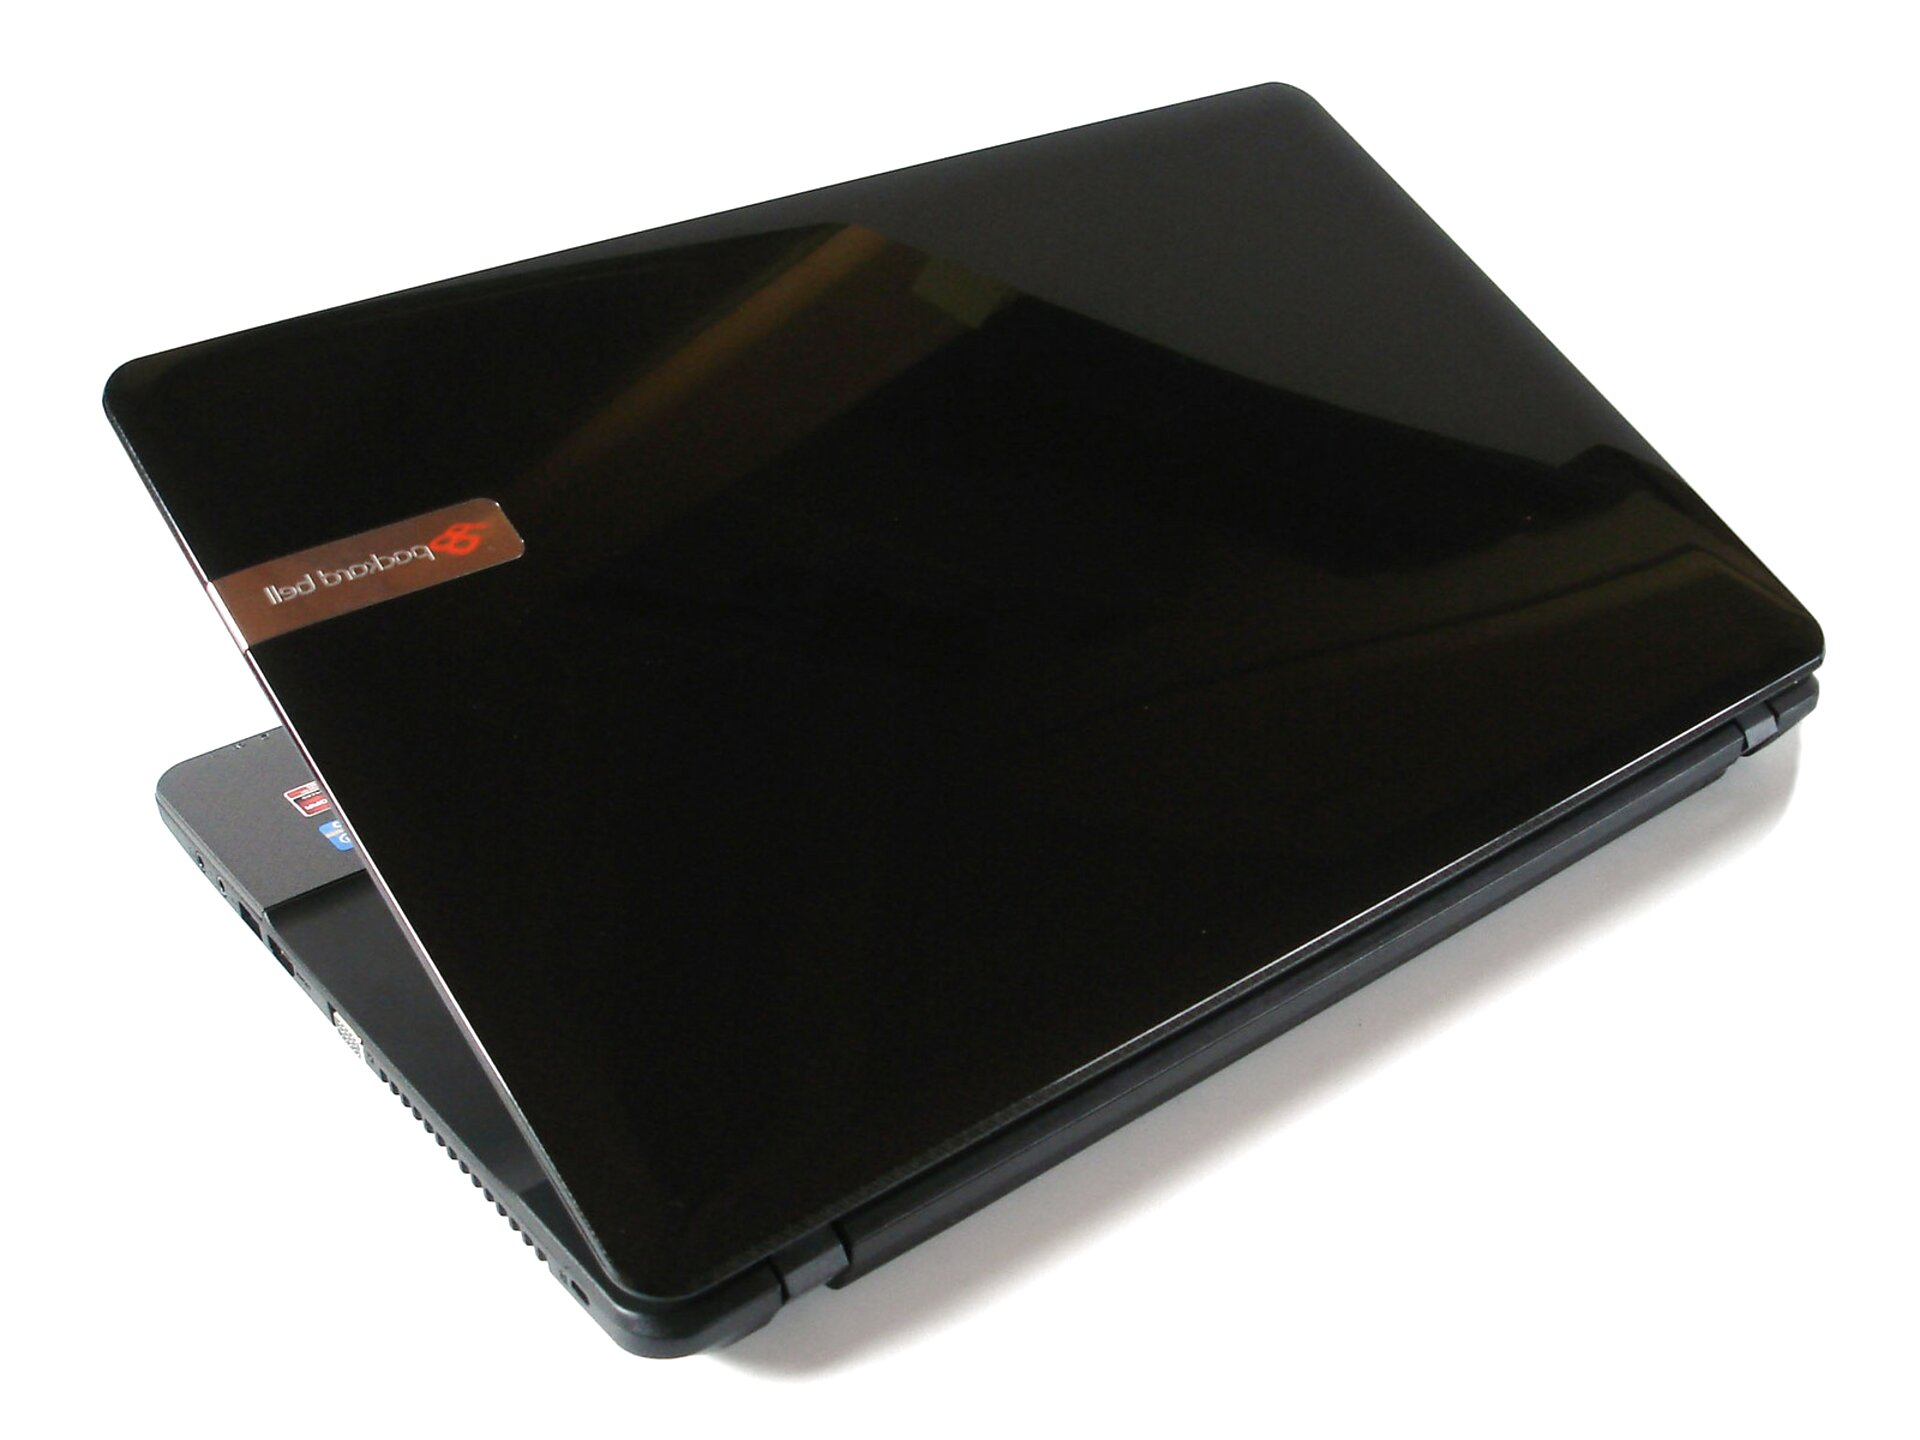 packard bell easynote for sale